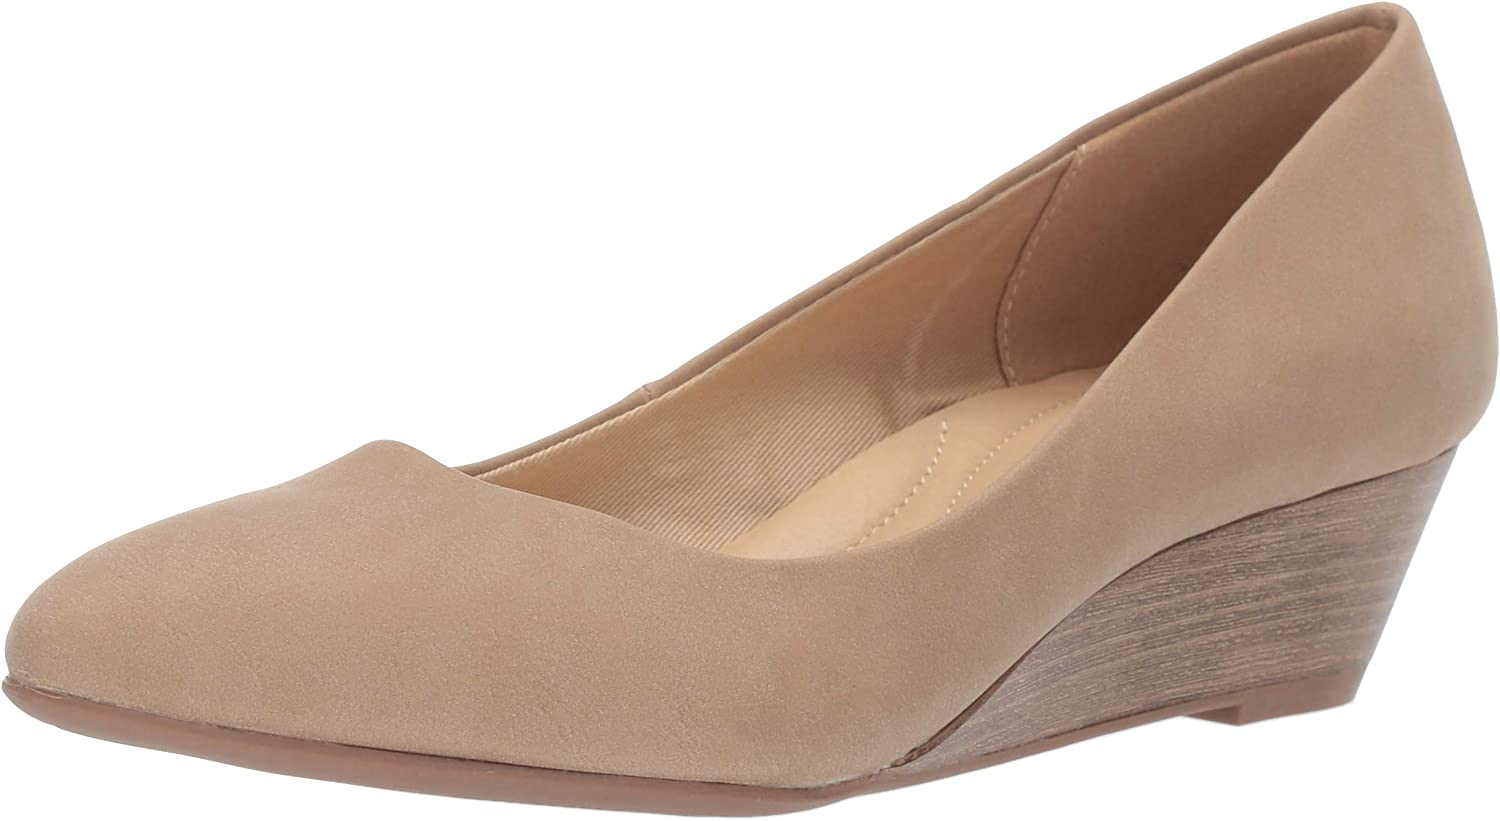 CL by Chinese Laundry Women's Alyce Pump